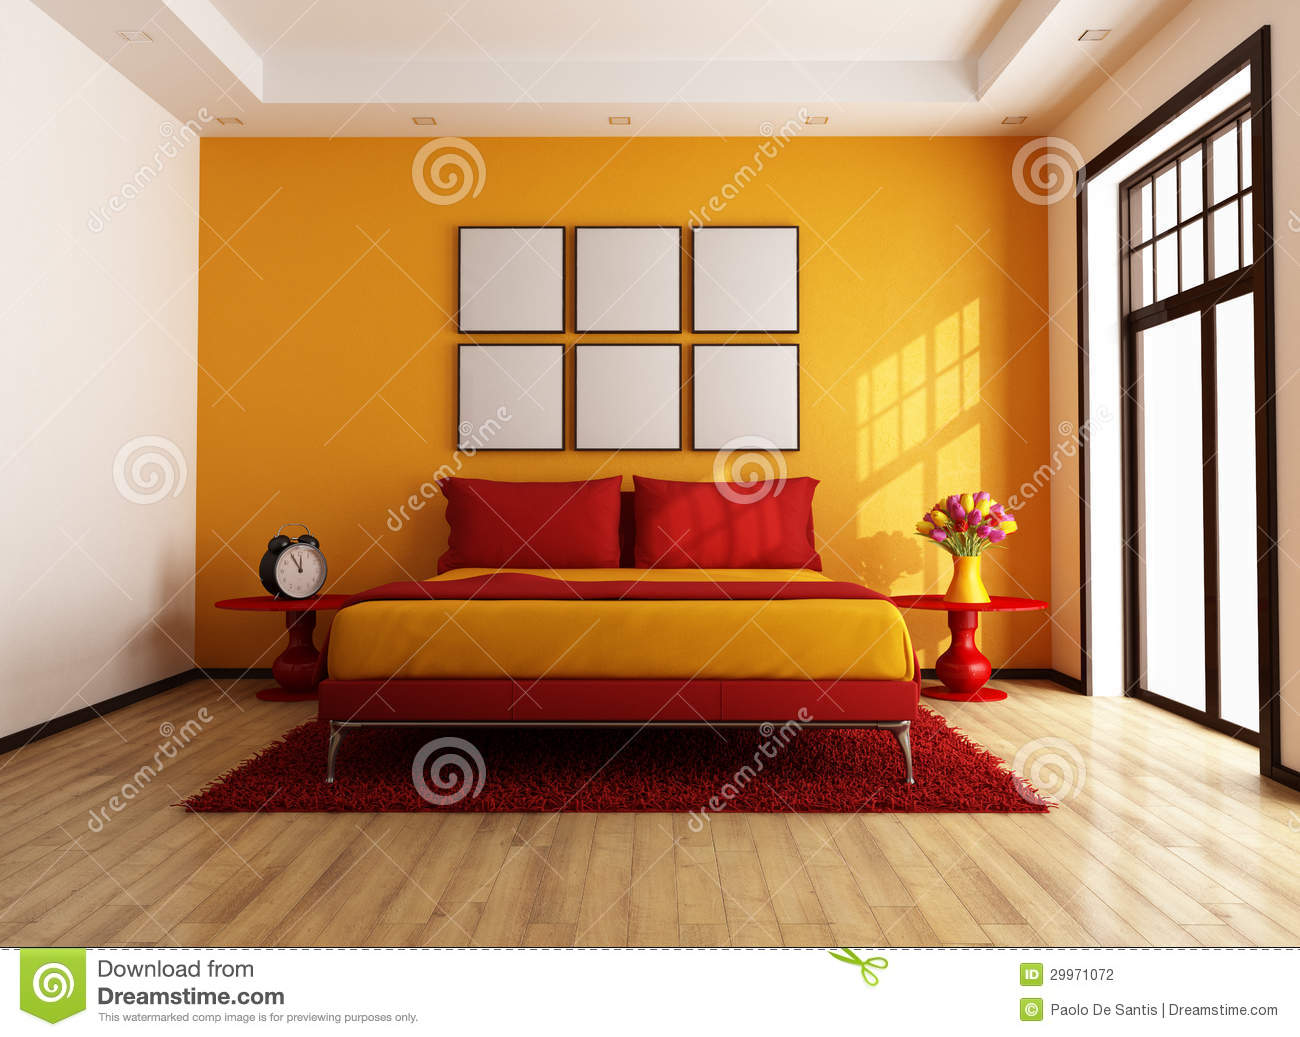 Chambre a coucher moderne rouge chambre couleur bordeaux Chambre a coucher moderne noir et rouge